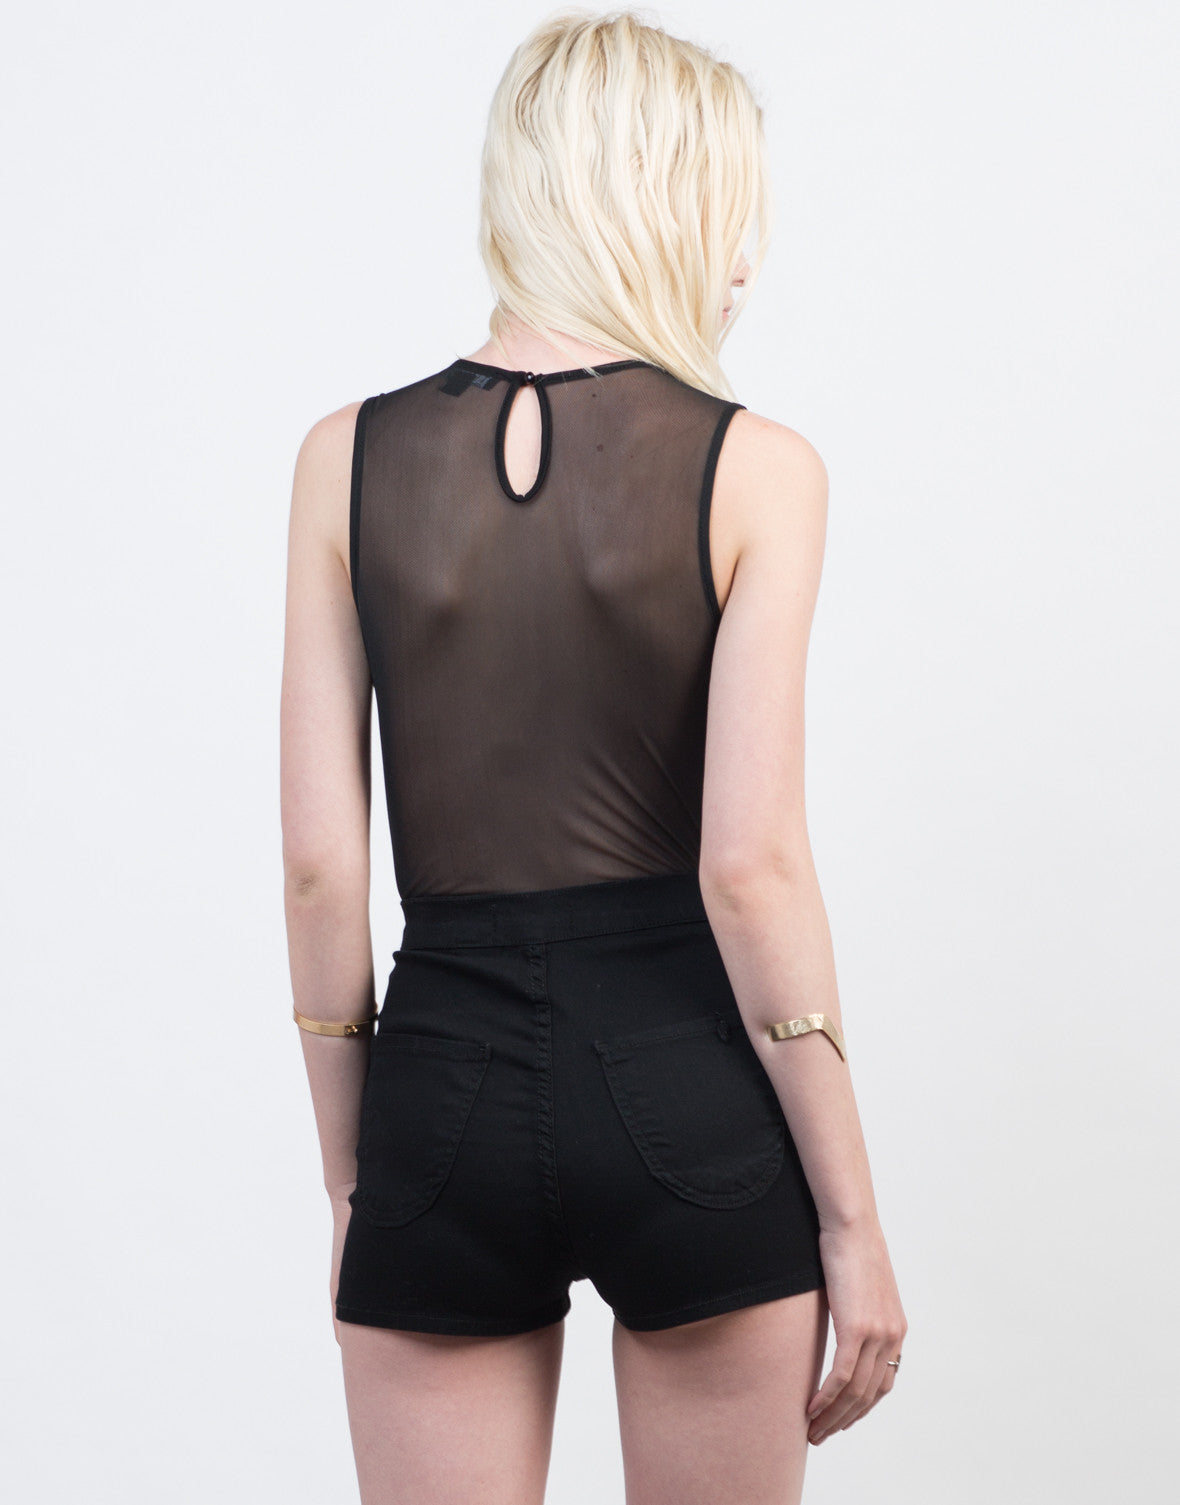 Back View of Mesh and Lace Bodysuit